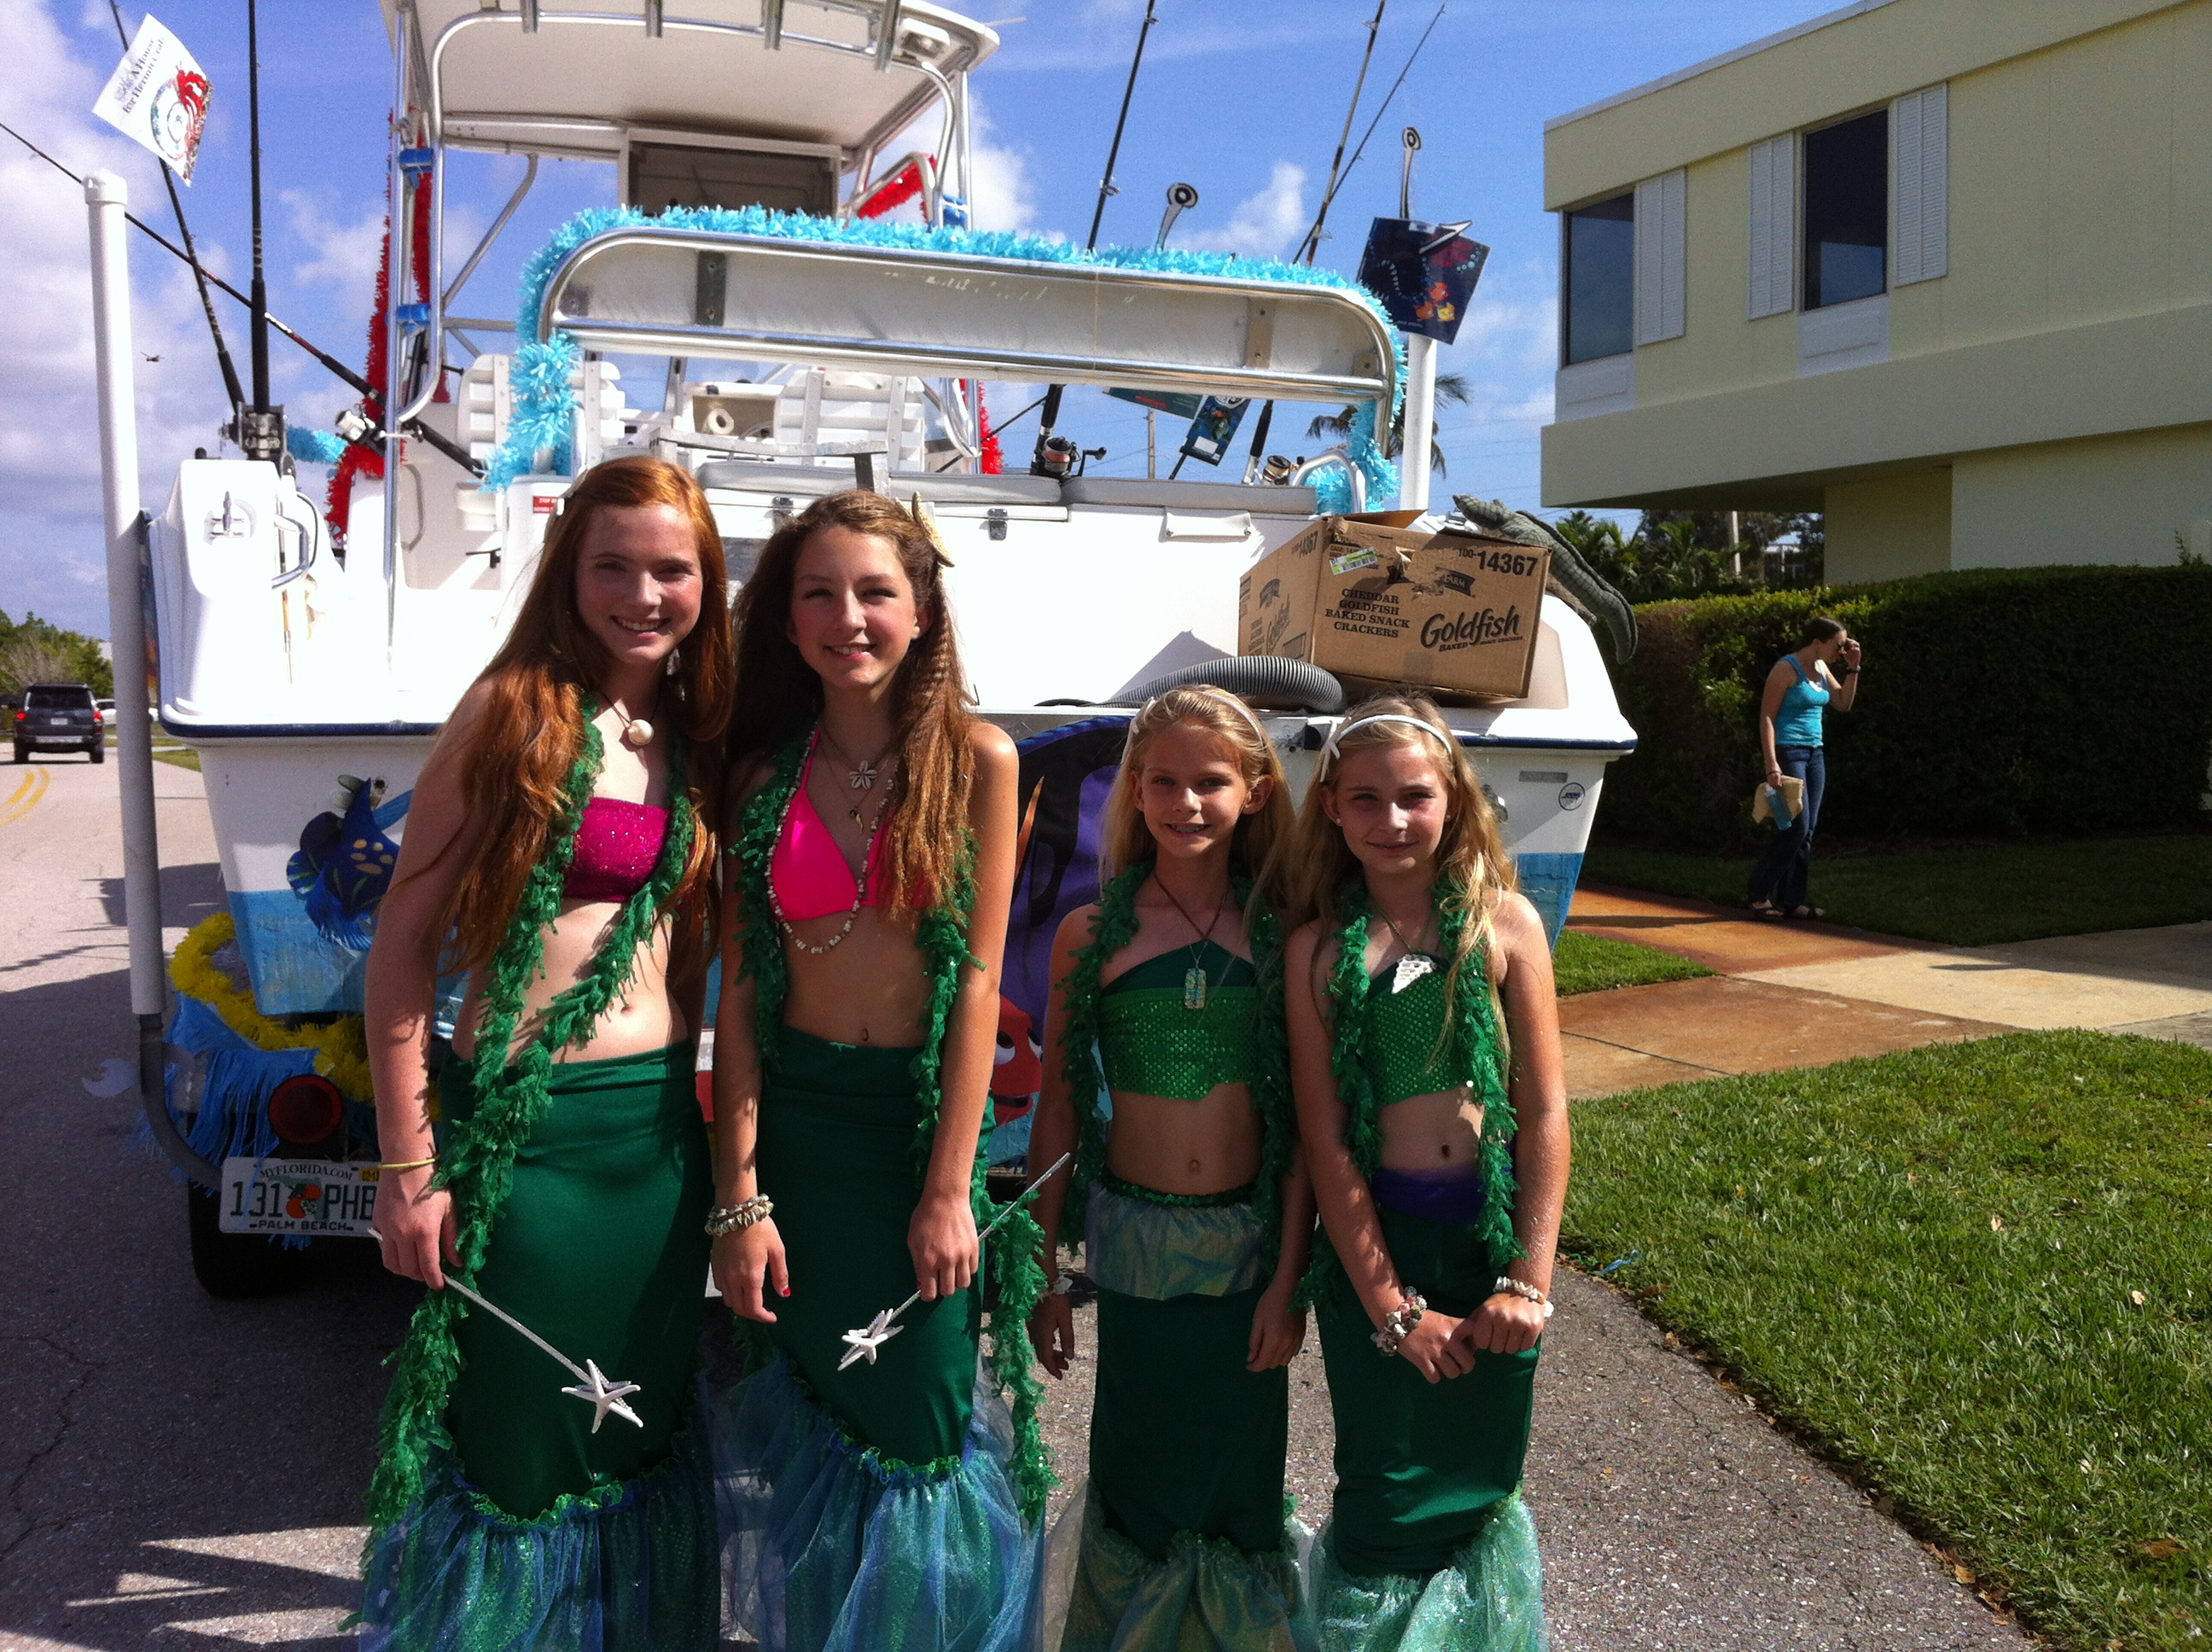 Posing for pictures before the parade starts